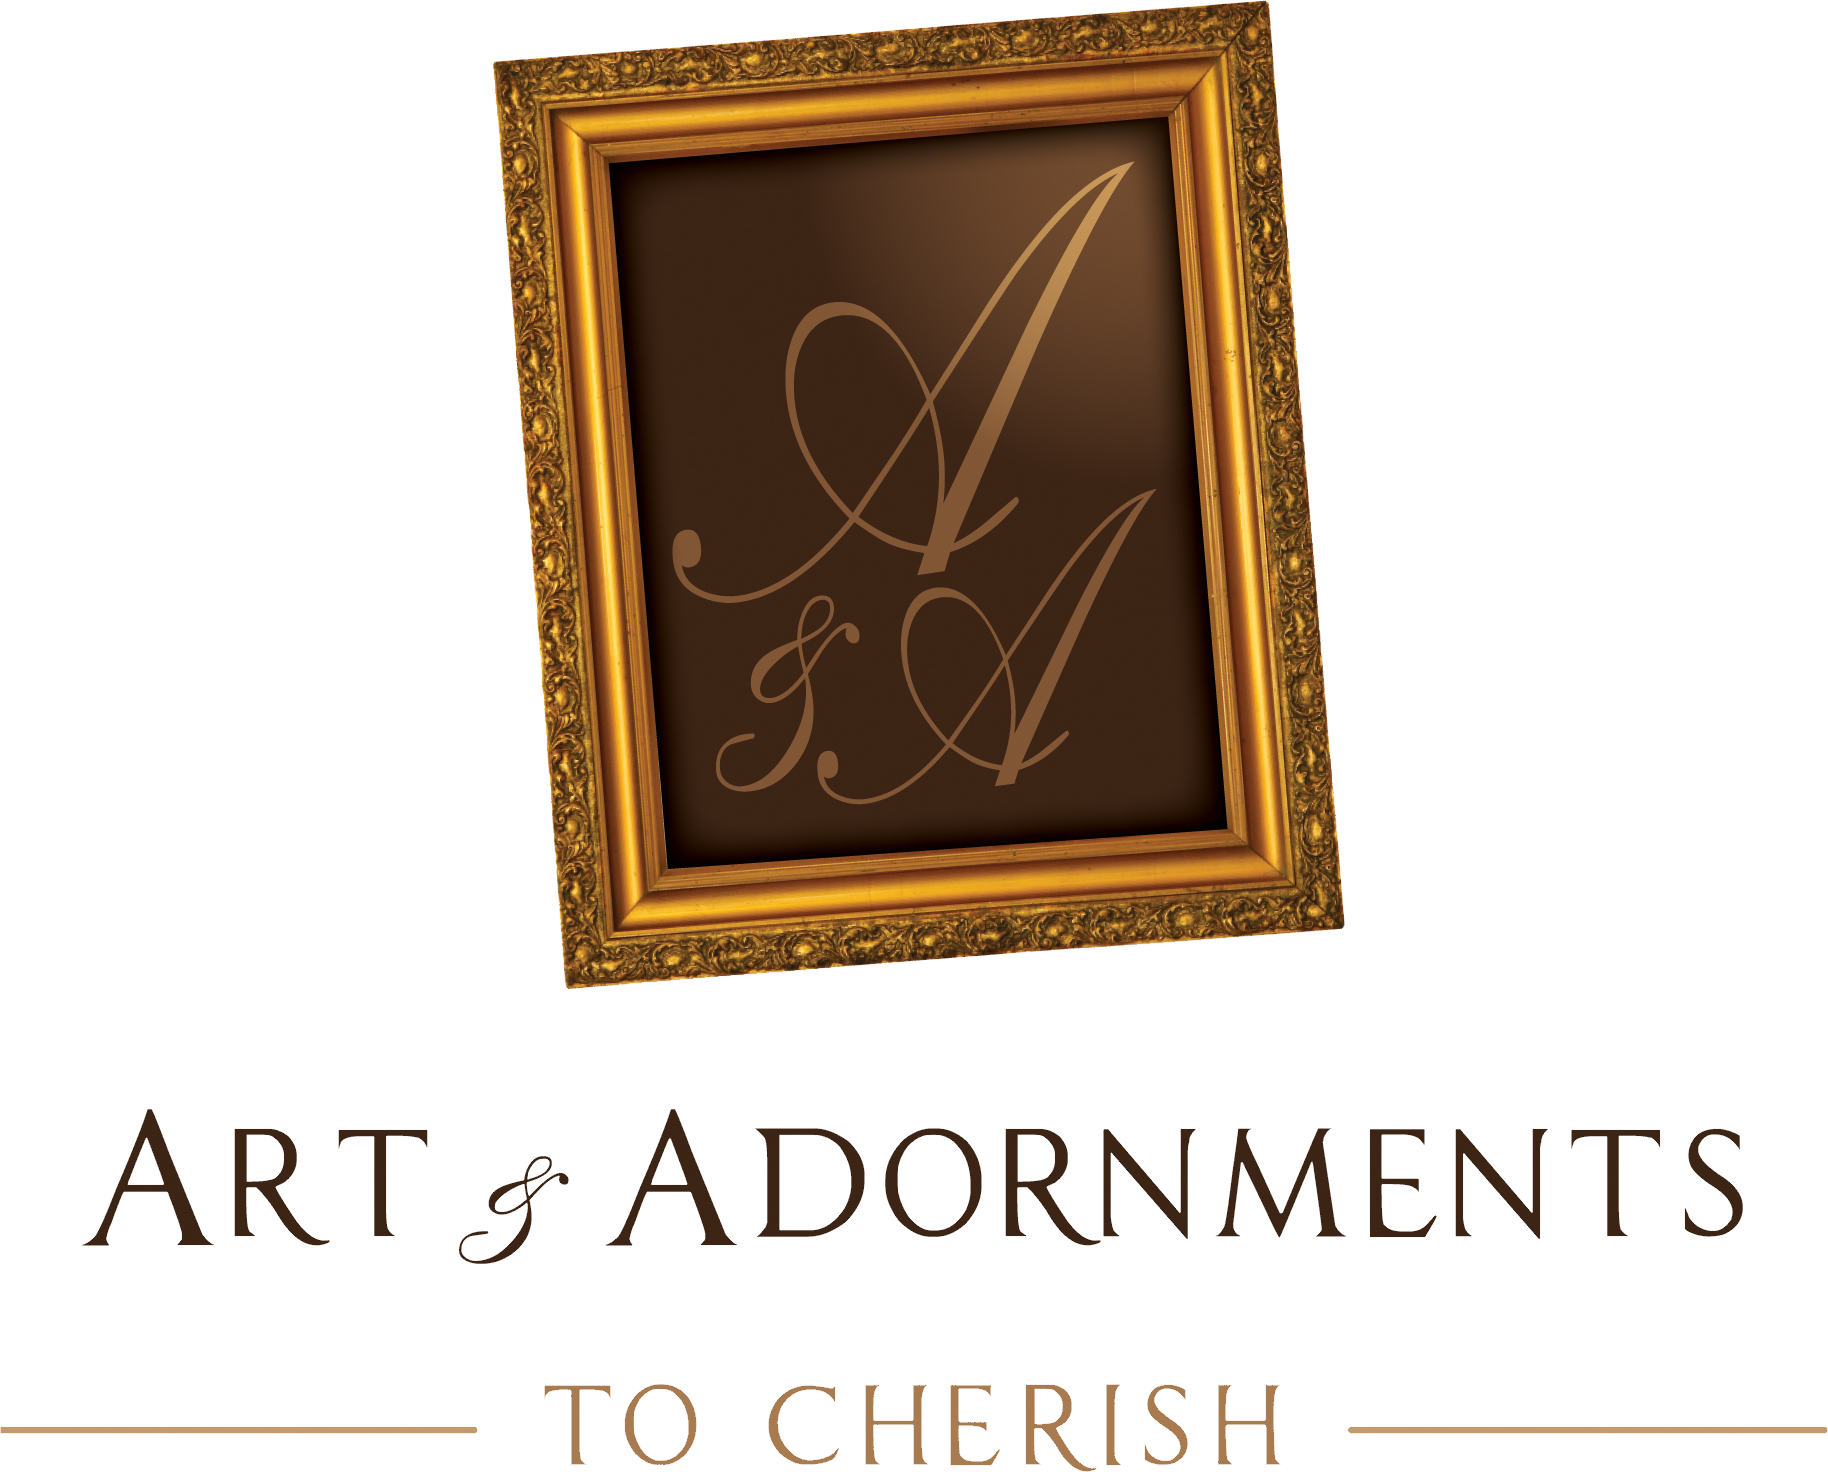 Art And Adornments To Cherish